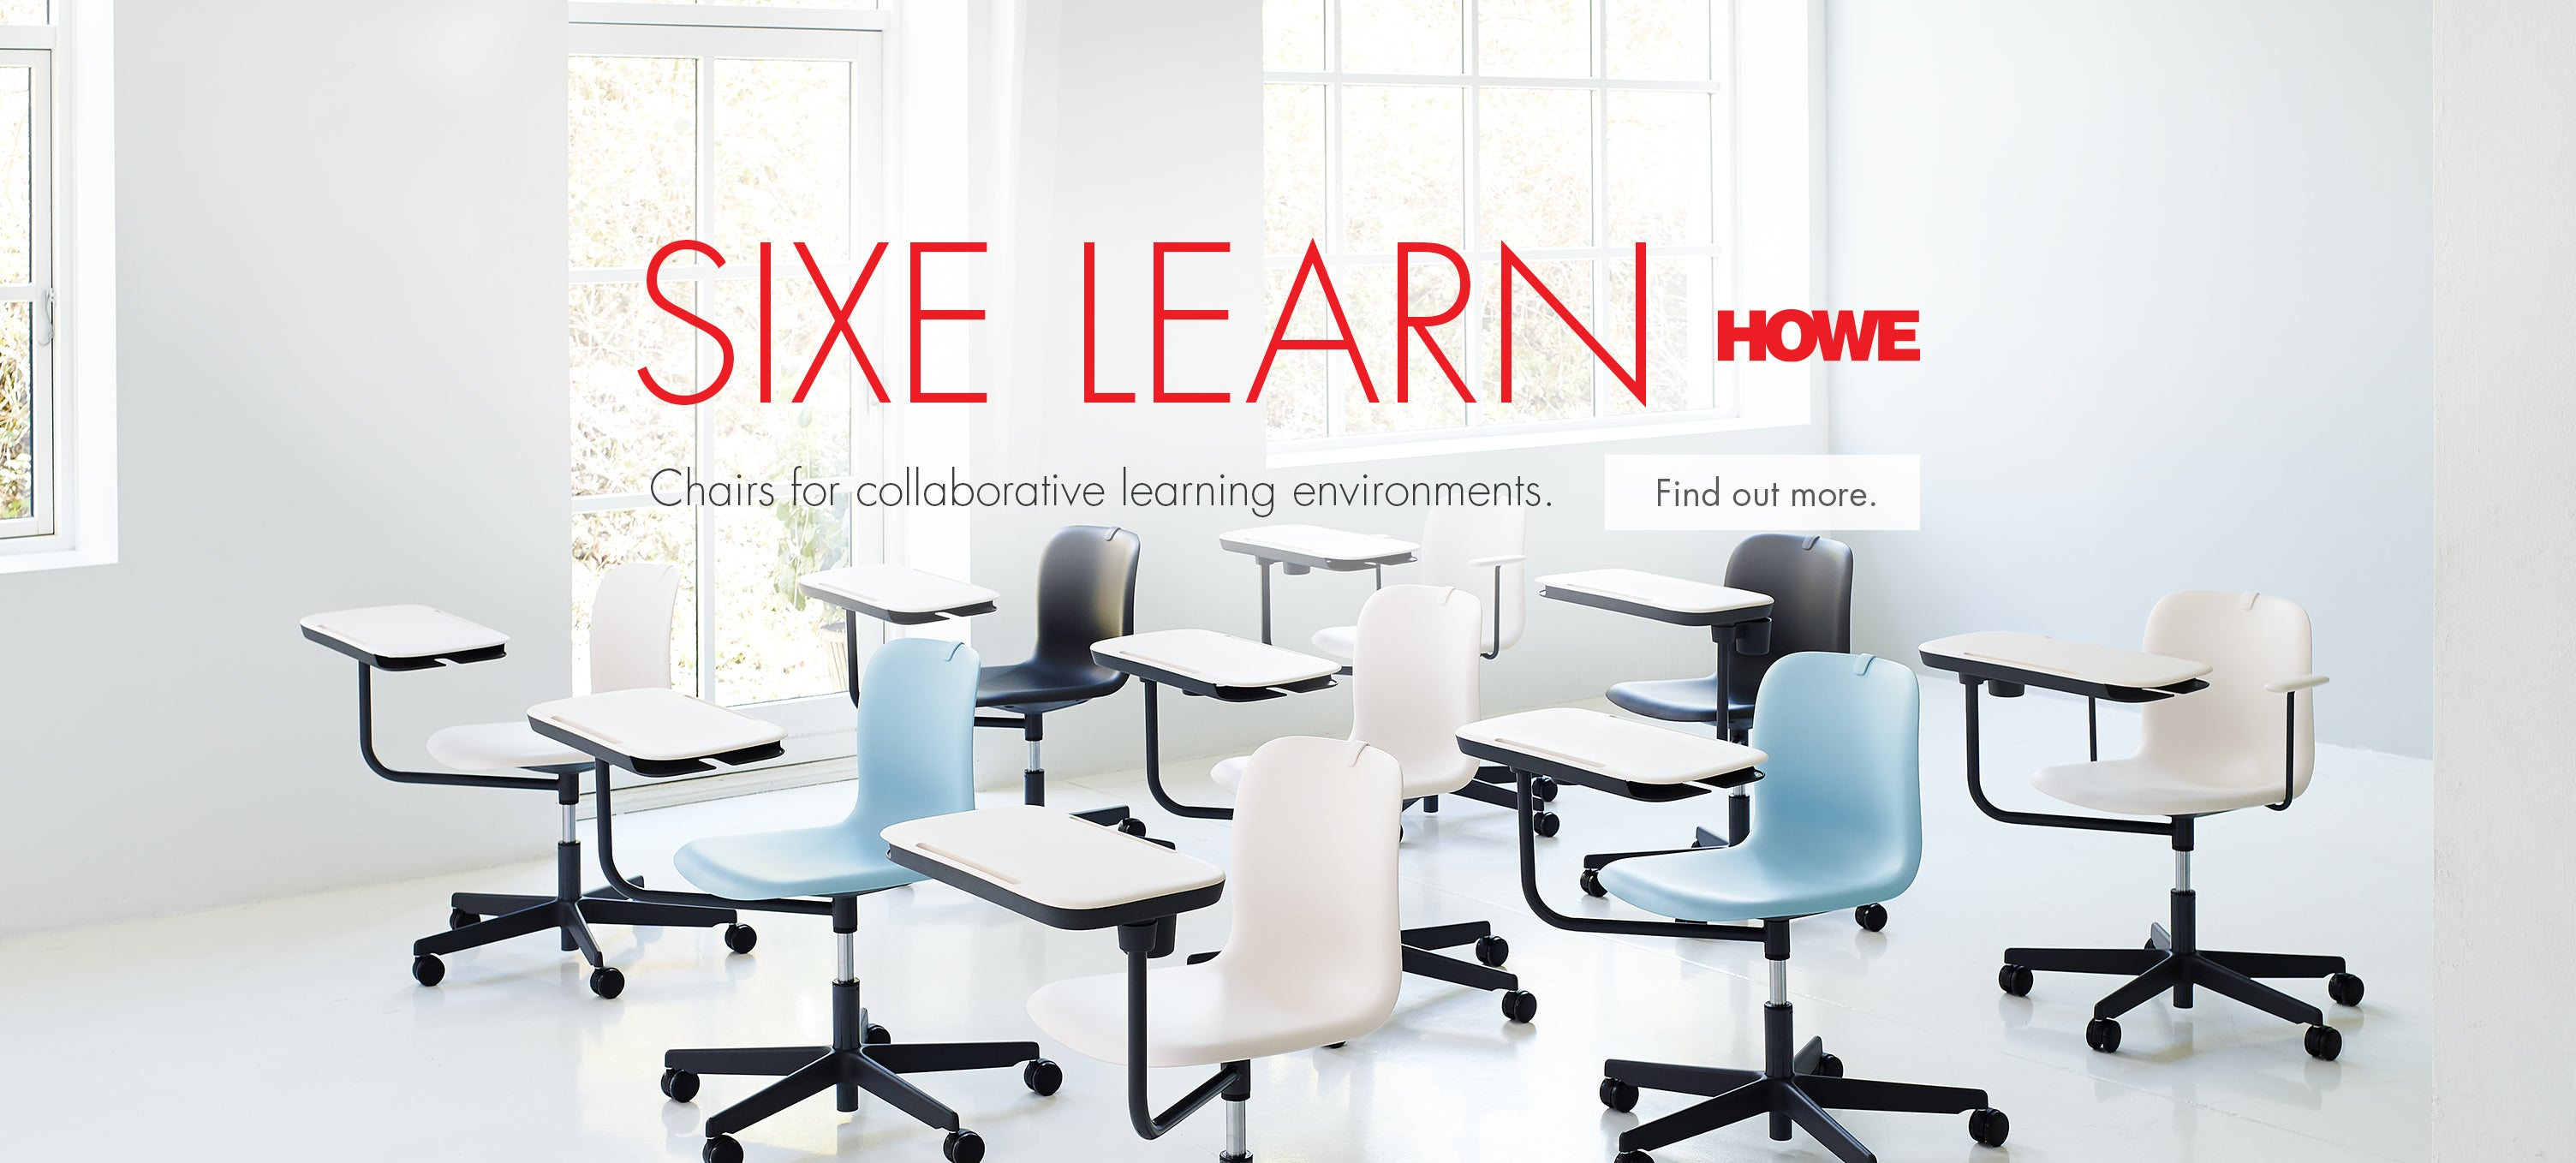 Howe Sixe Learn education chair